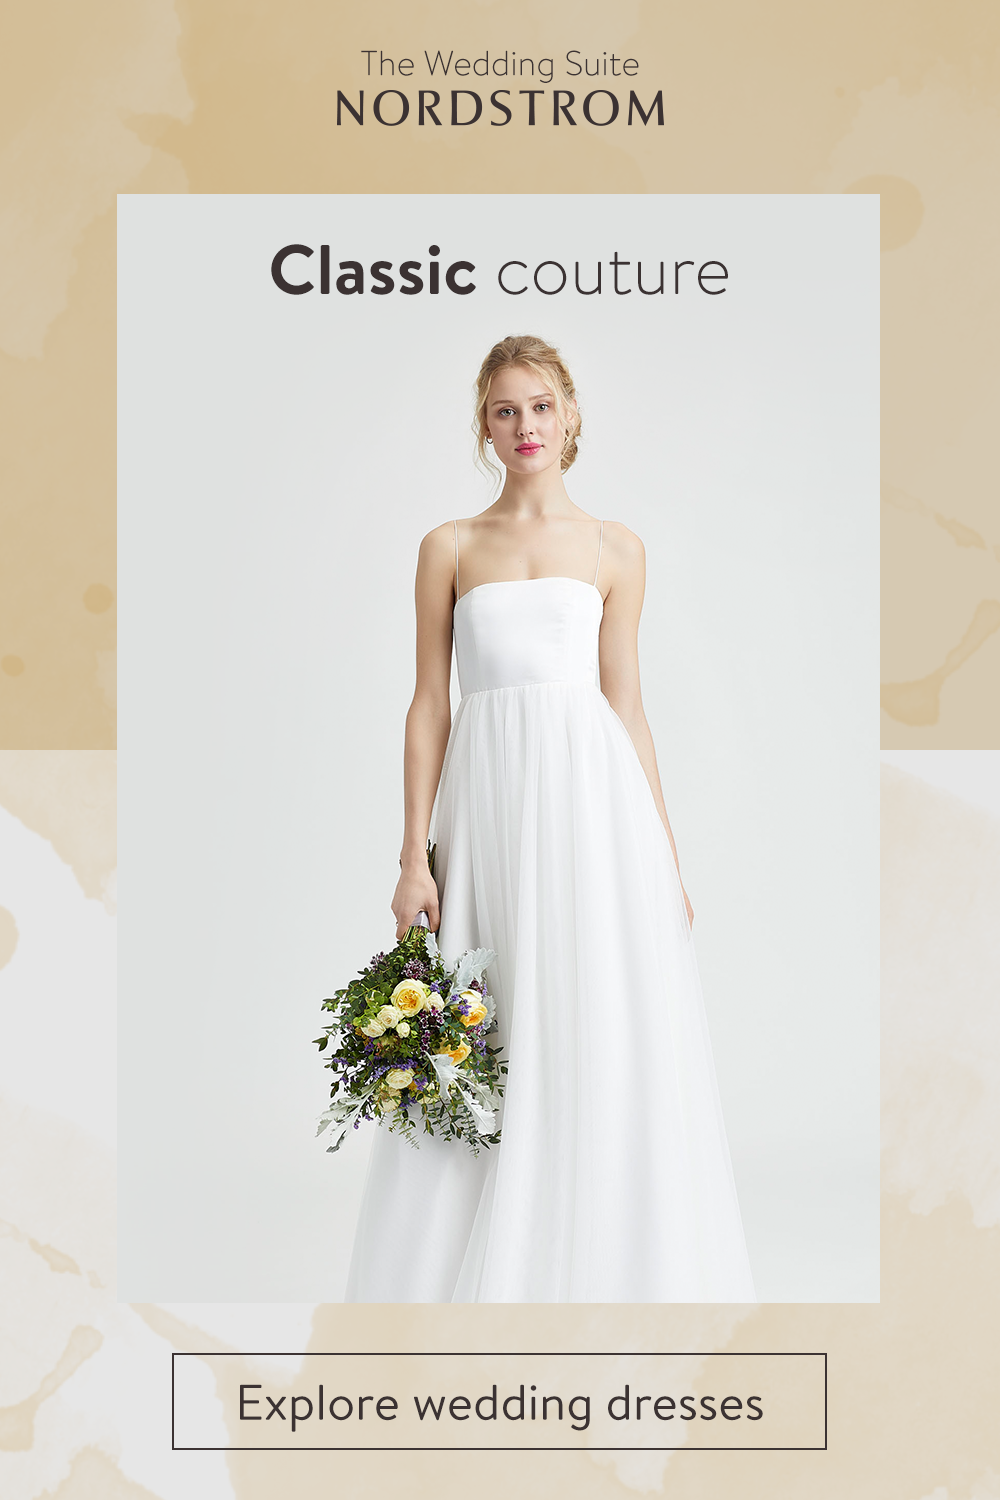 Explore Classic Couture Wedding Gowns At The Nordstrom Wedding Suite From Strapless Styles To Sleek Wedding Dresses Casual Wedding Dress Wedding Dresses Lace